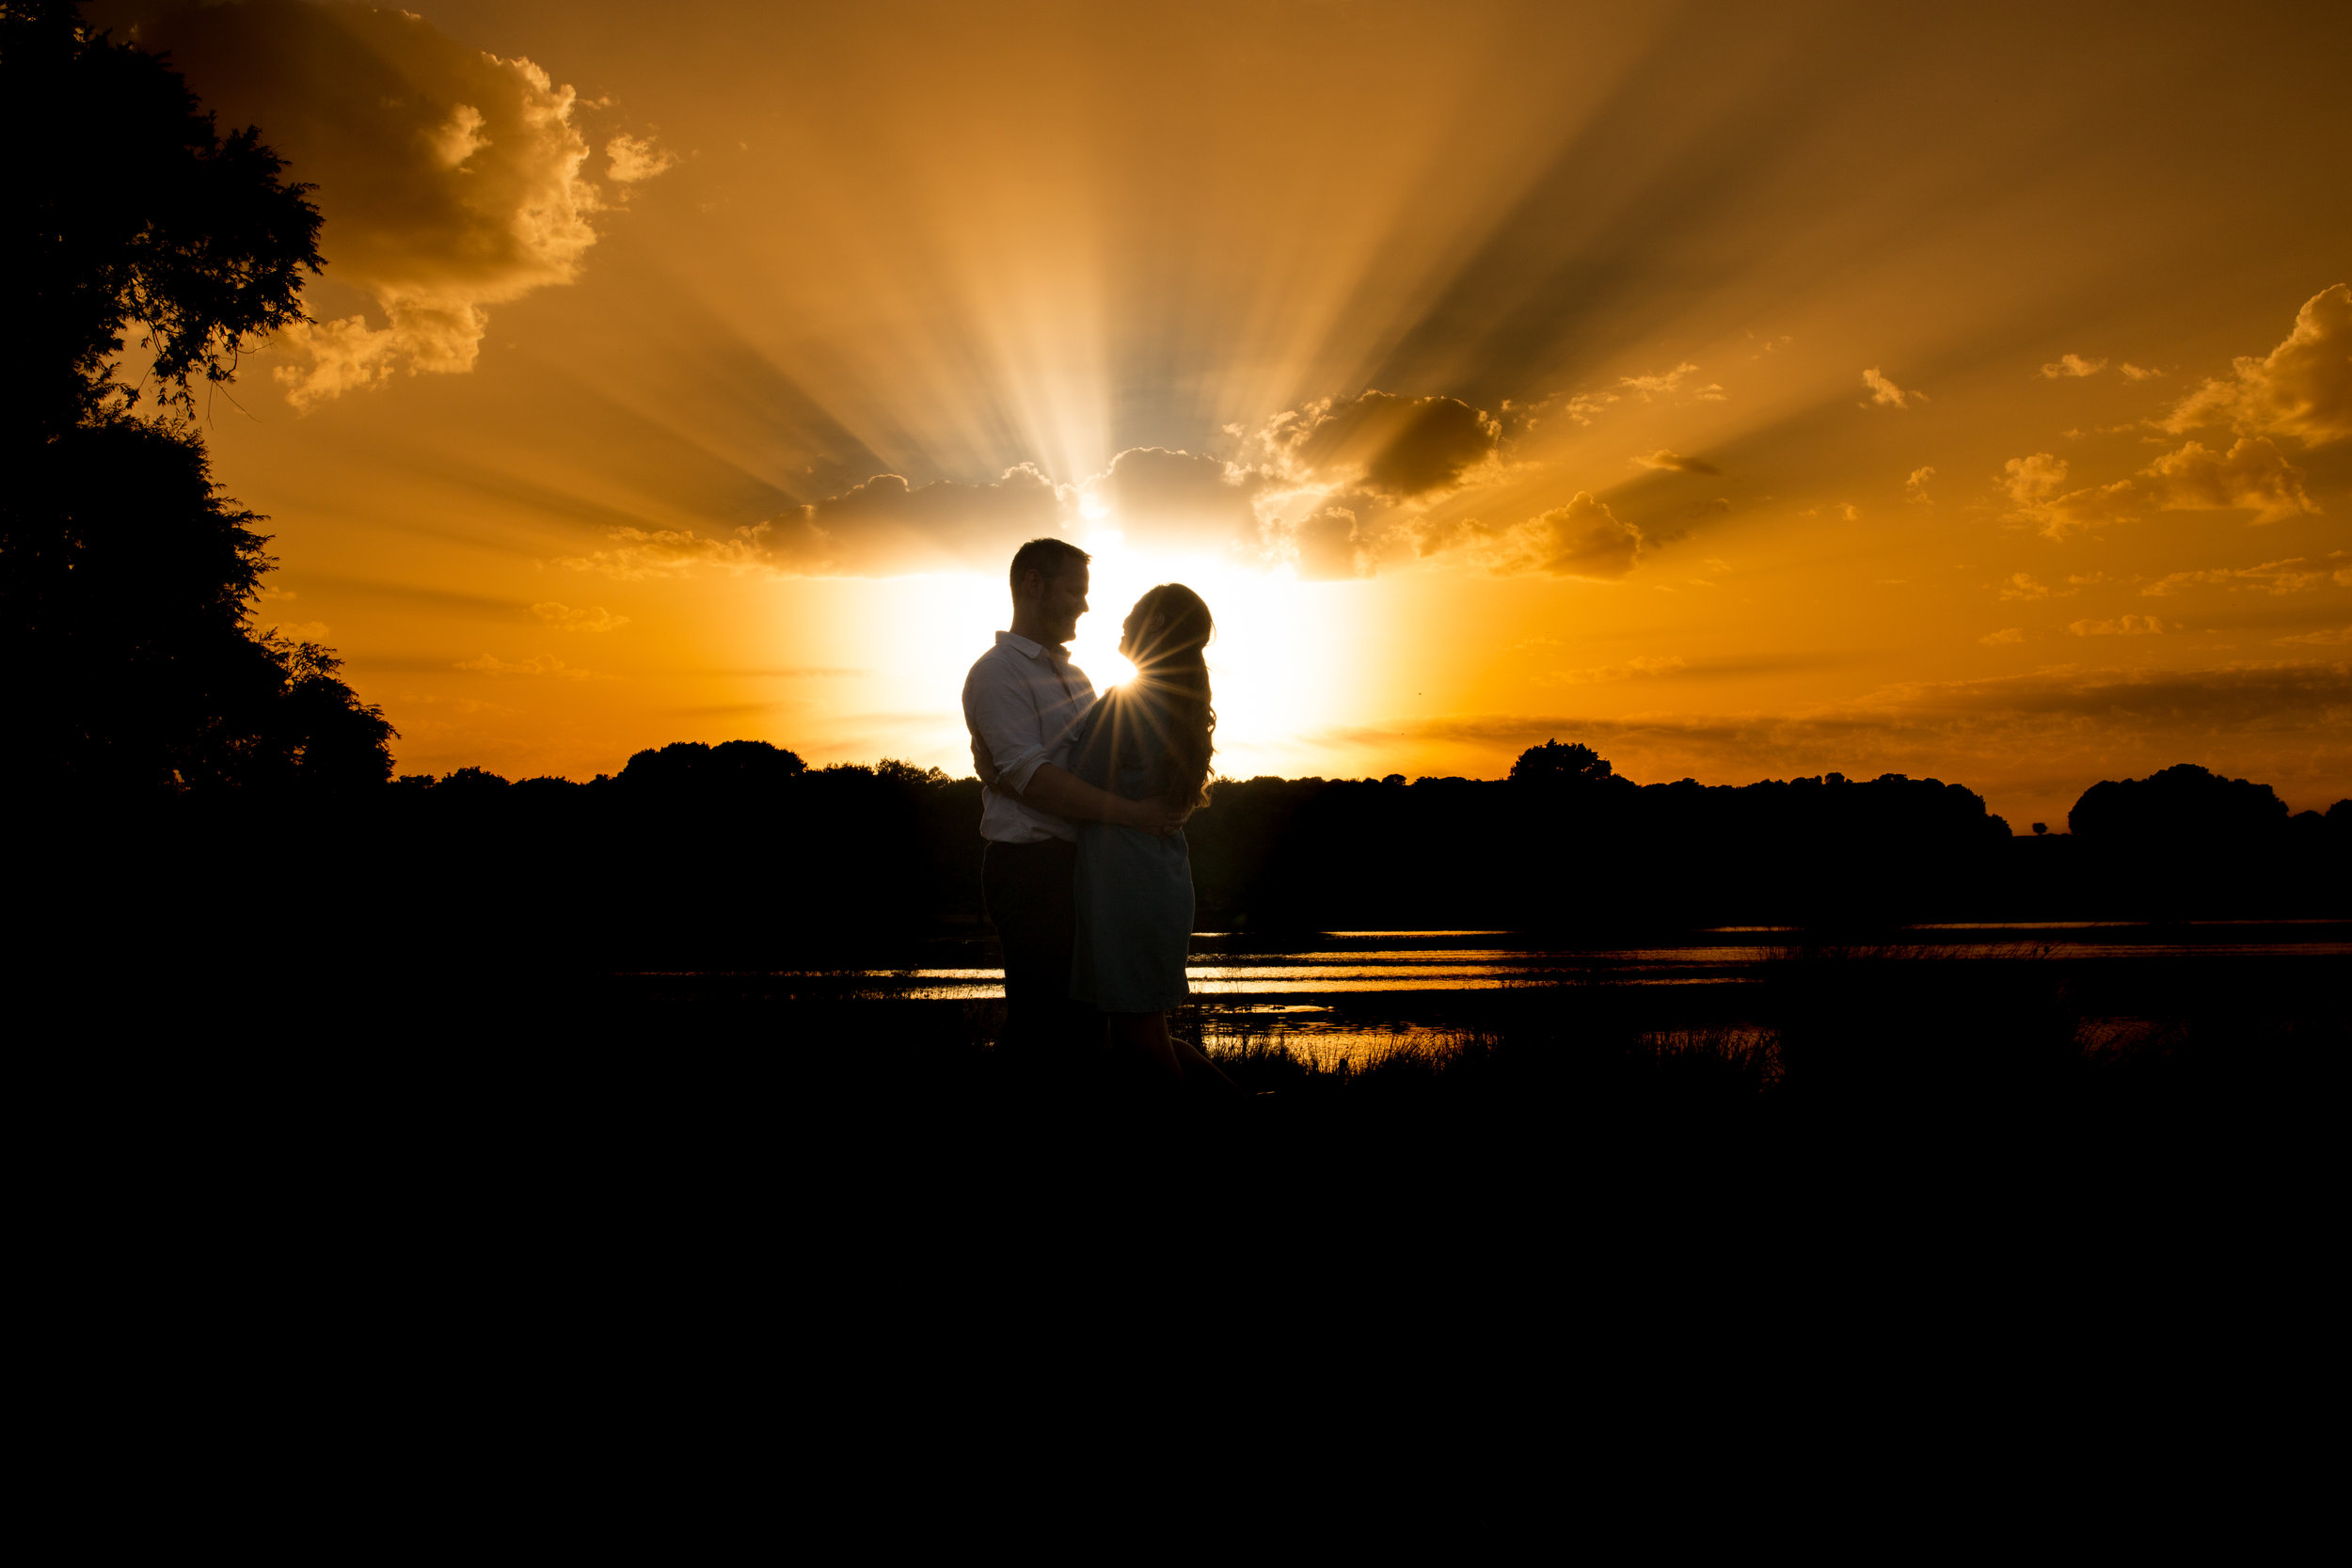 Engagement photoshoot at sunset